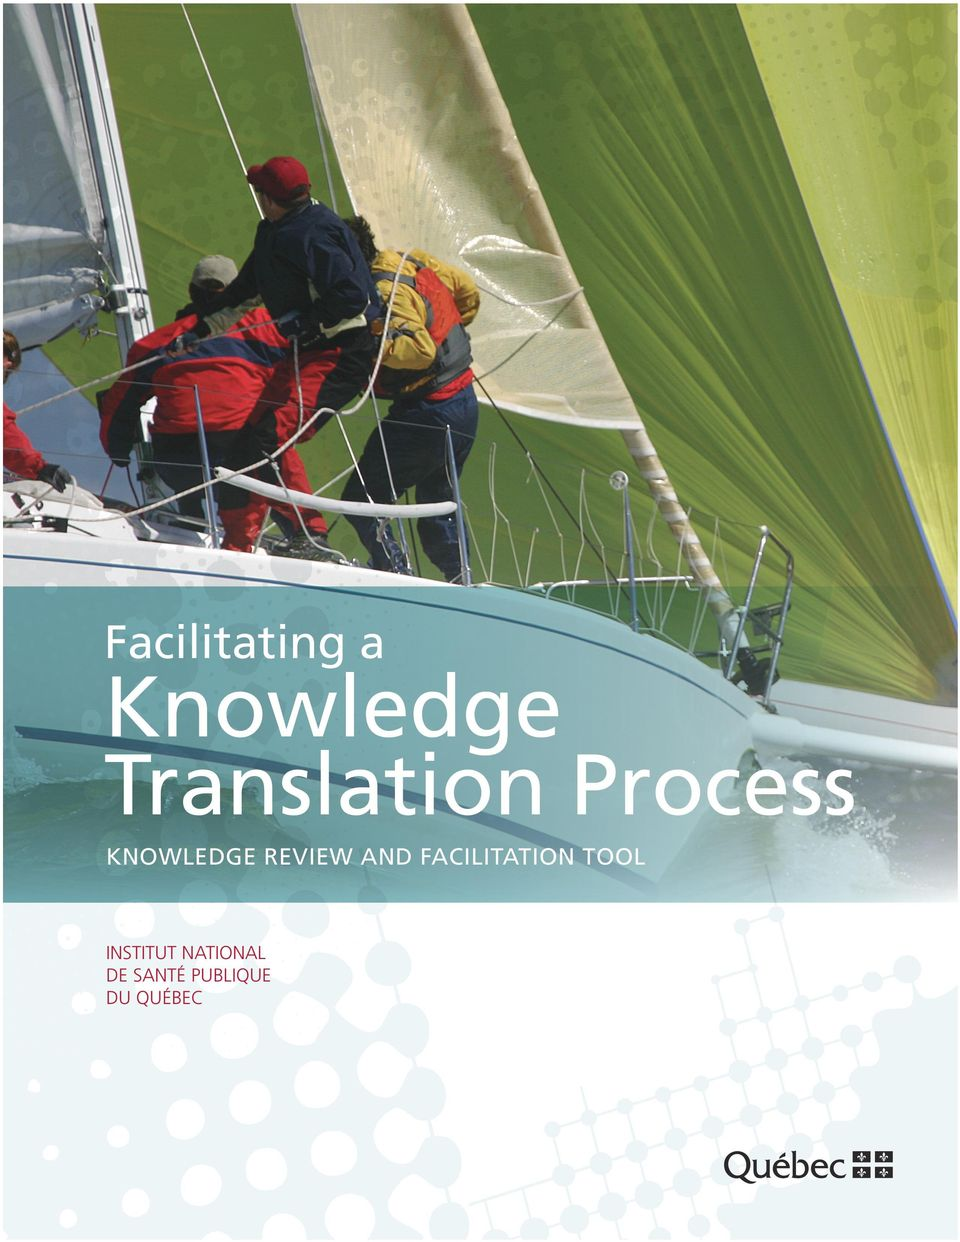 Translation Process KNOWLEDGE REVIEW